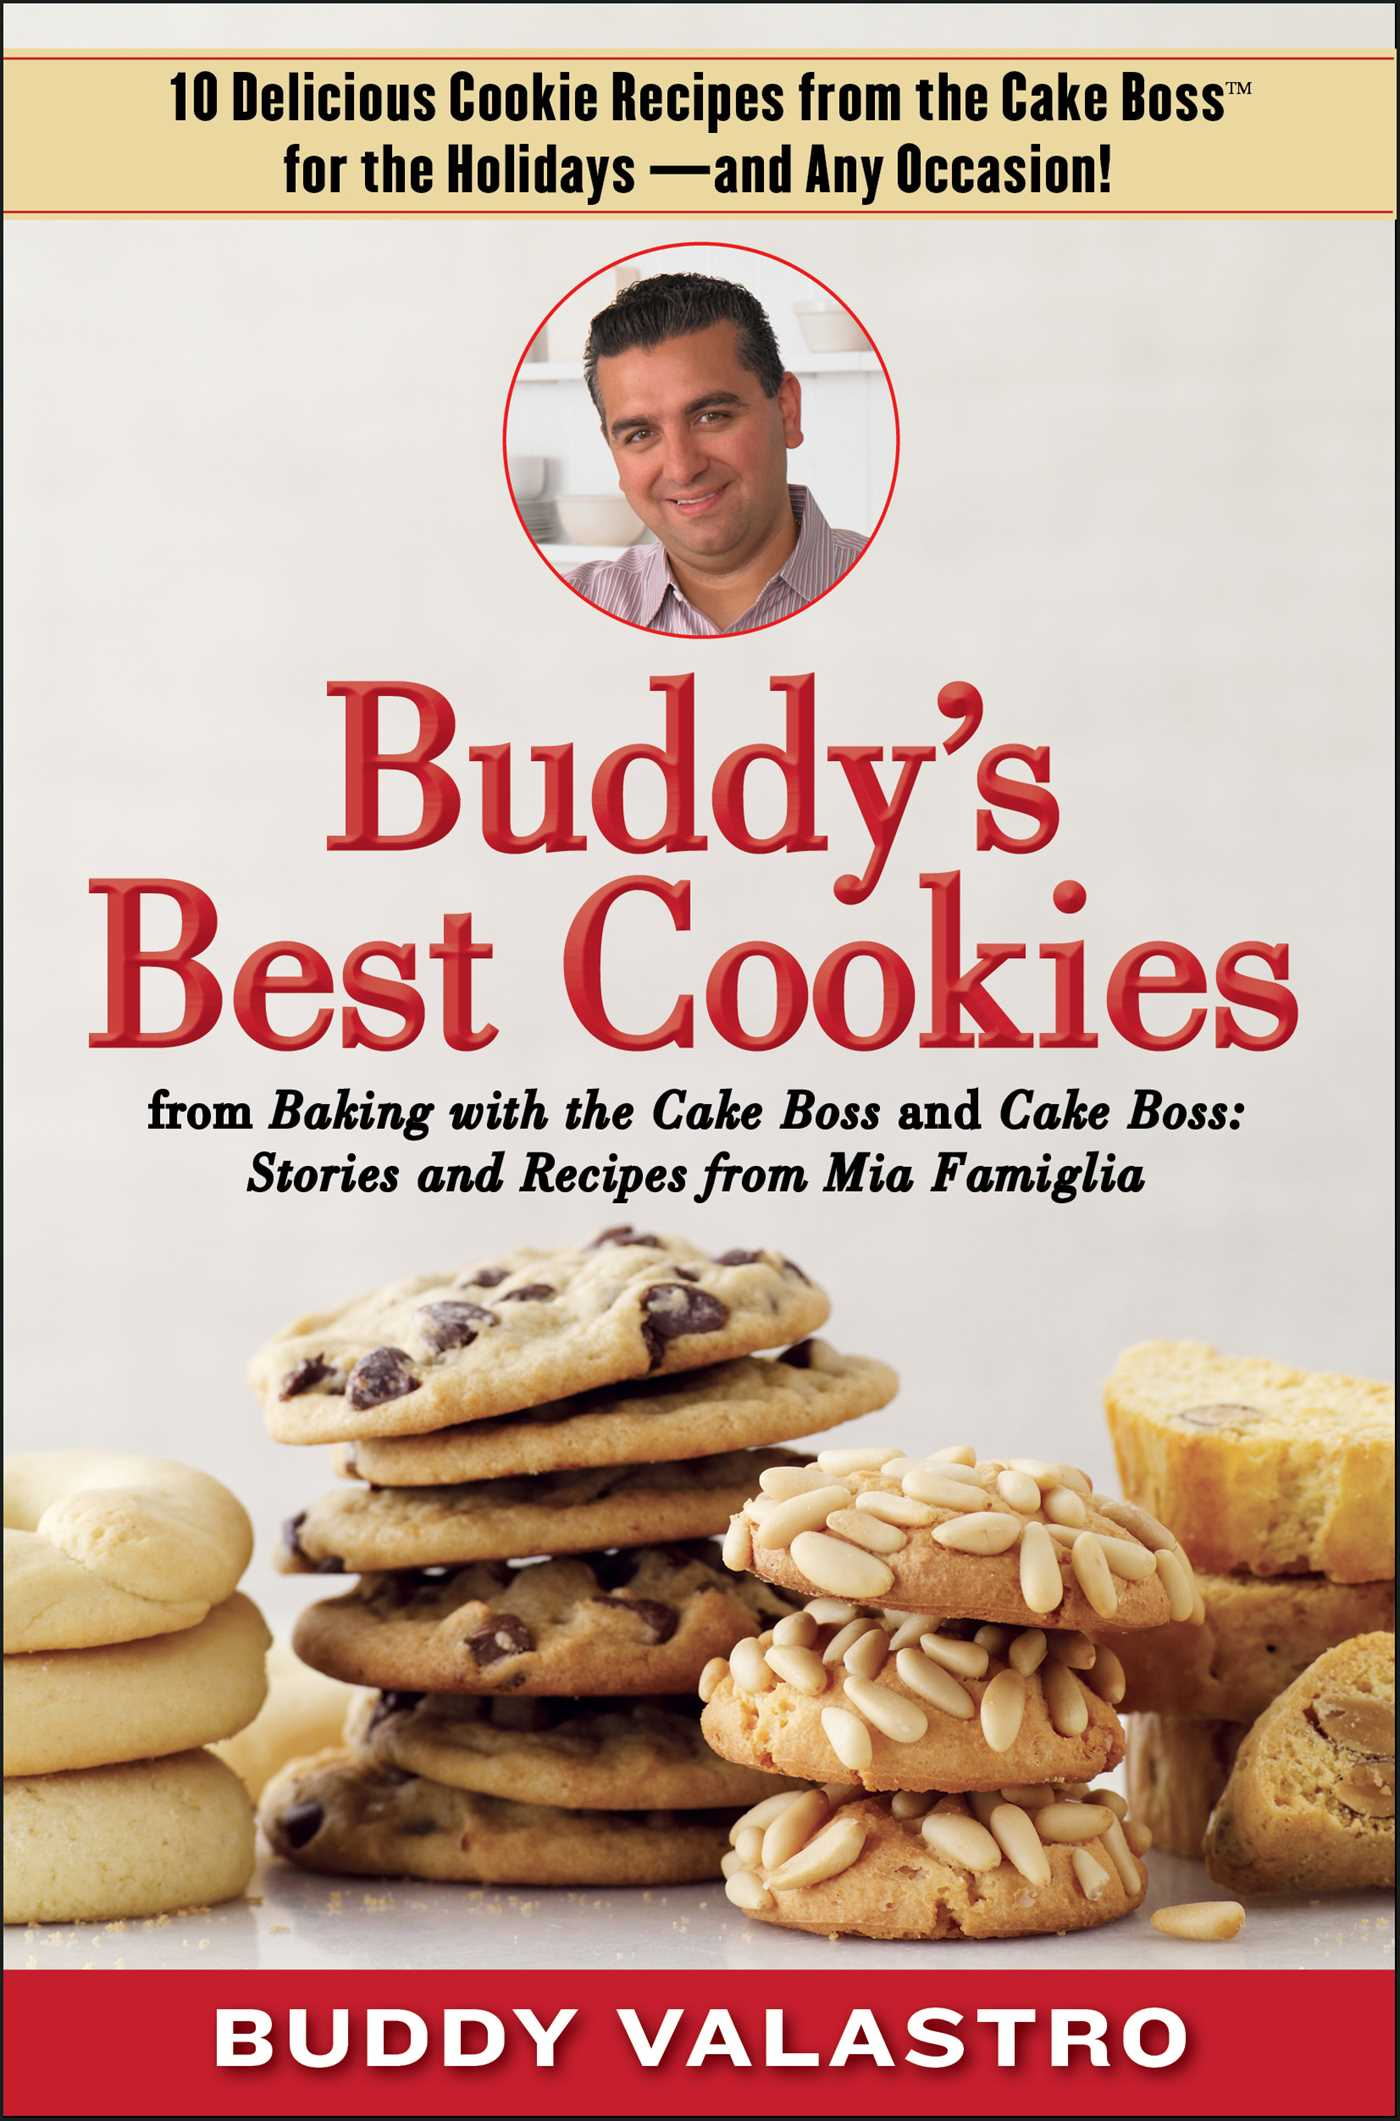 Buddys best cookies from baking with the cake boss and cake boss 9781476725482 hr